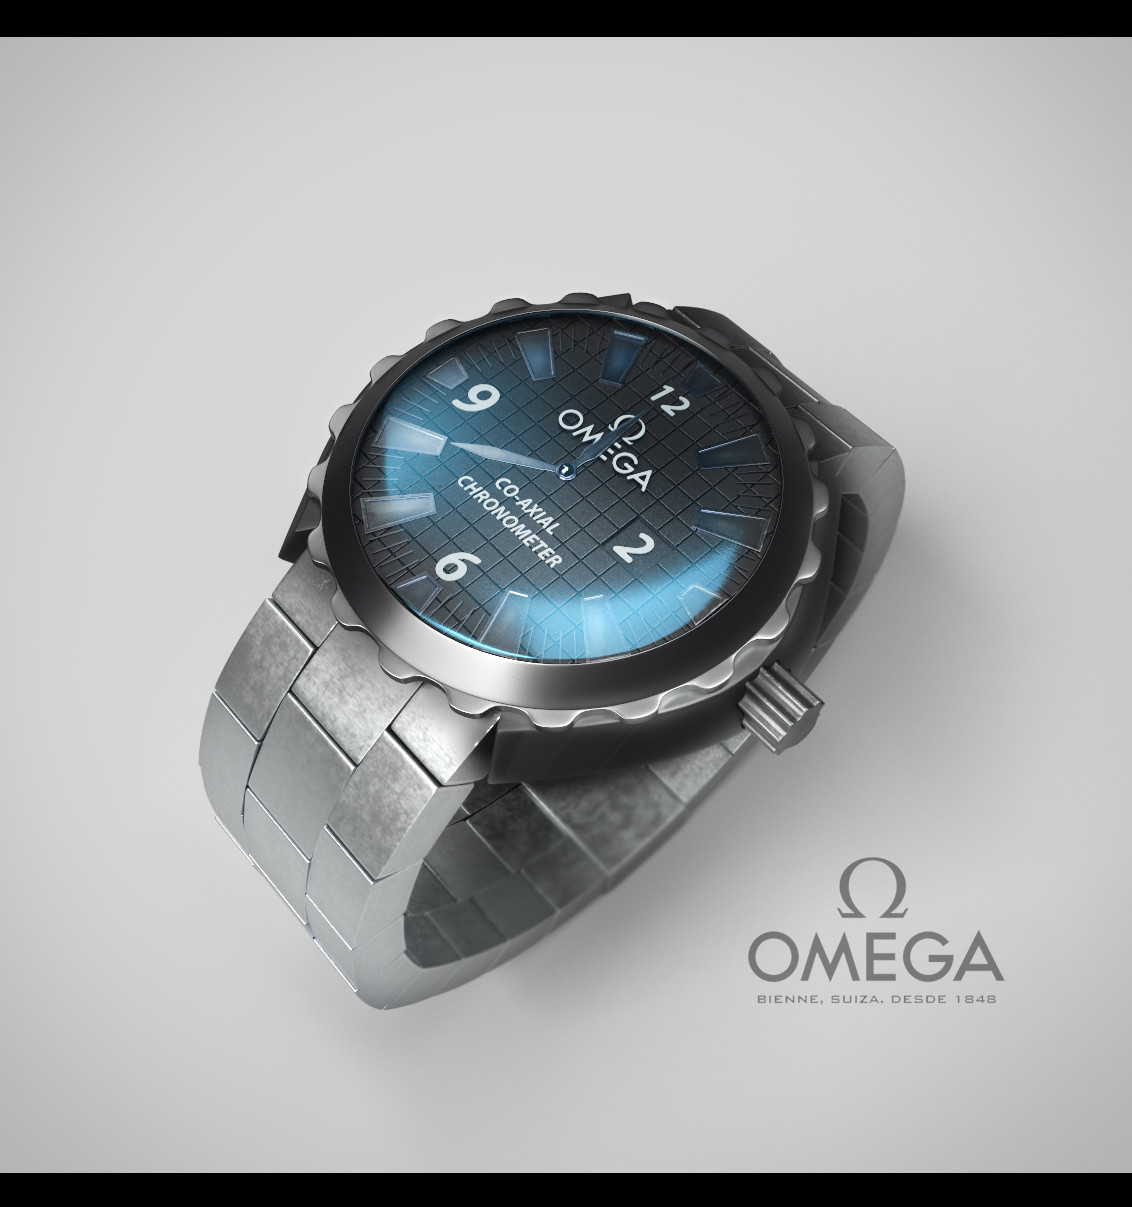 Ahmad merheb watch01 1